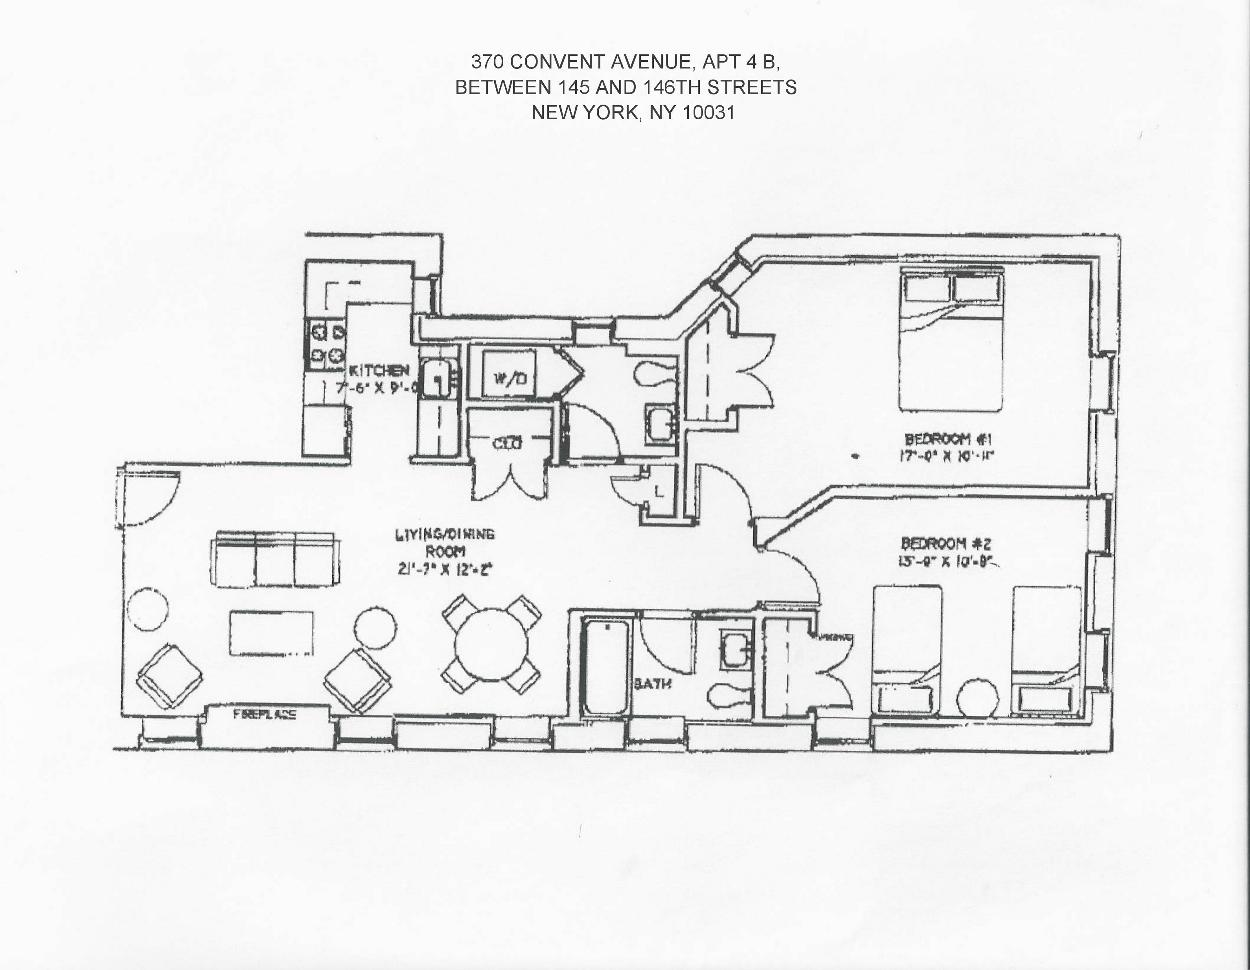 Original and current floor plan